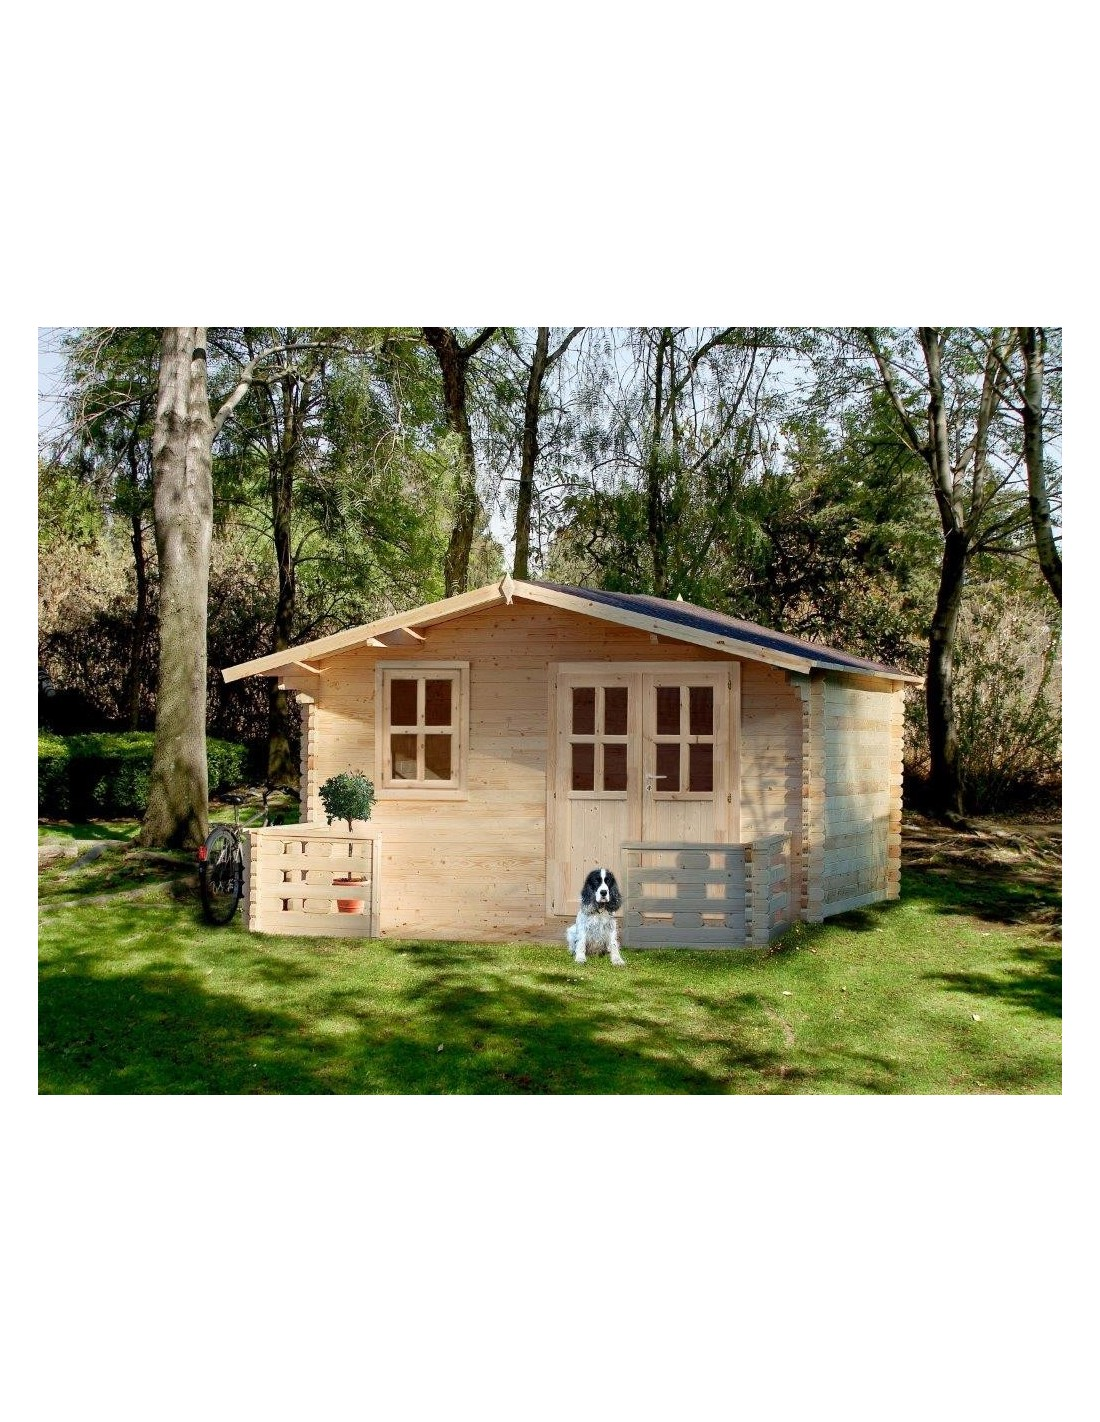 chalet de jardin en bois 4x5m p 34mm2 avec terrasse. Black Bedroom Furniture Sets. Home Design Ideas